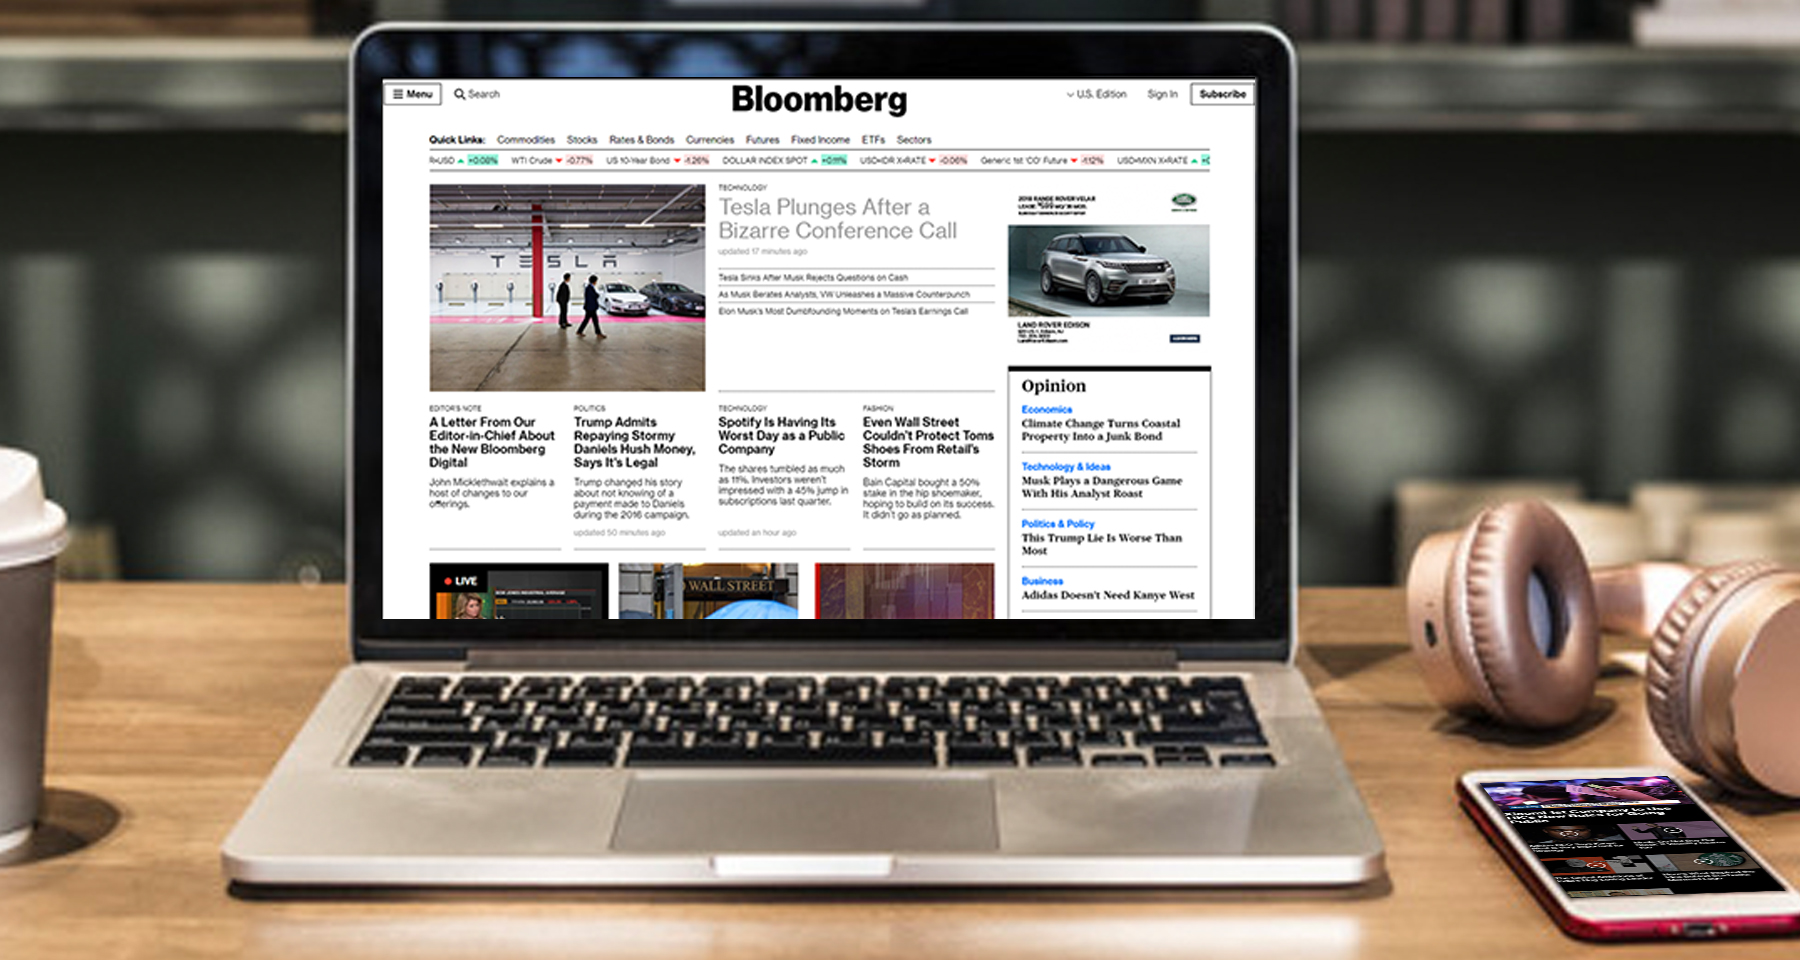 Bloomberg advertising format is responsive to client, user